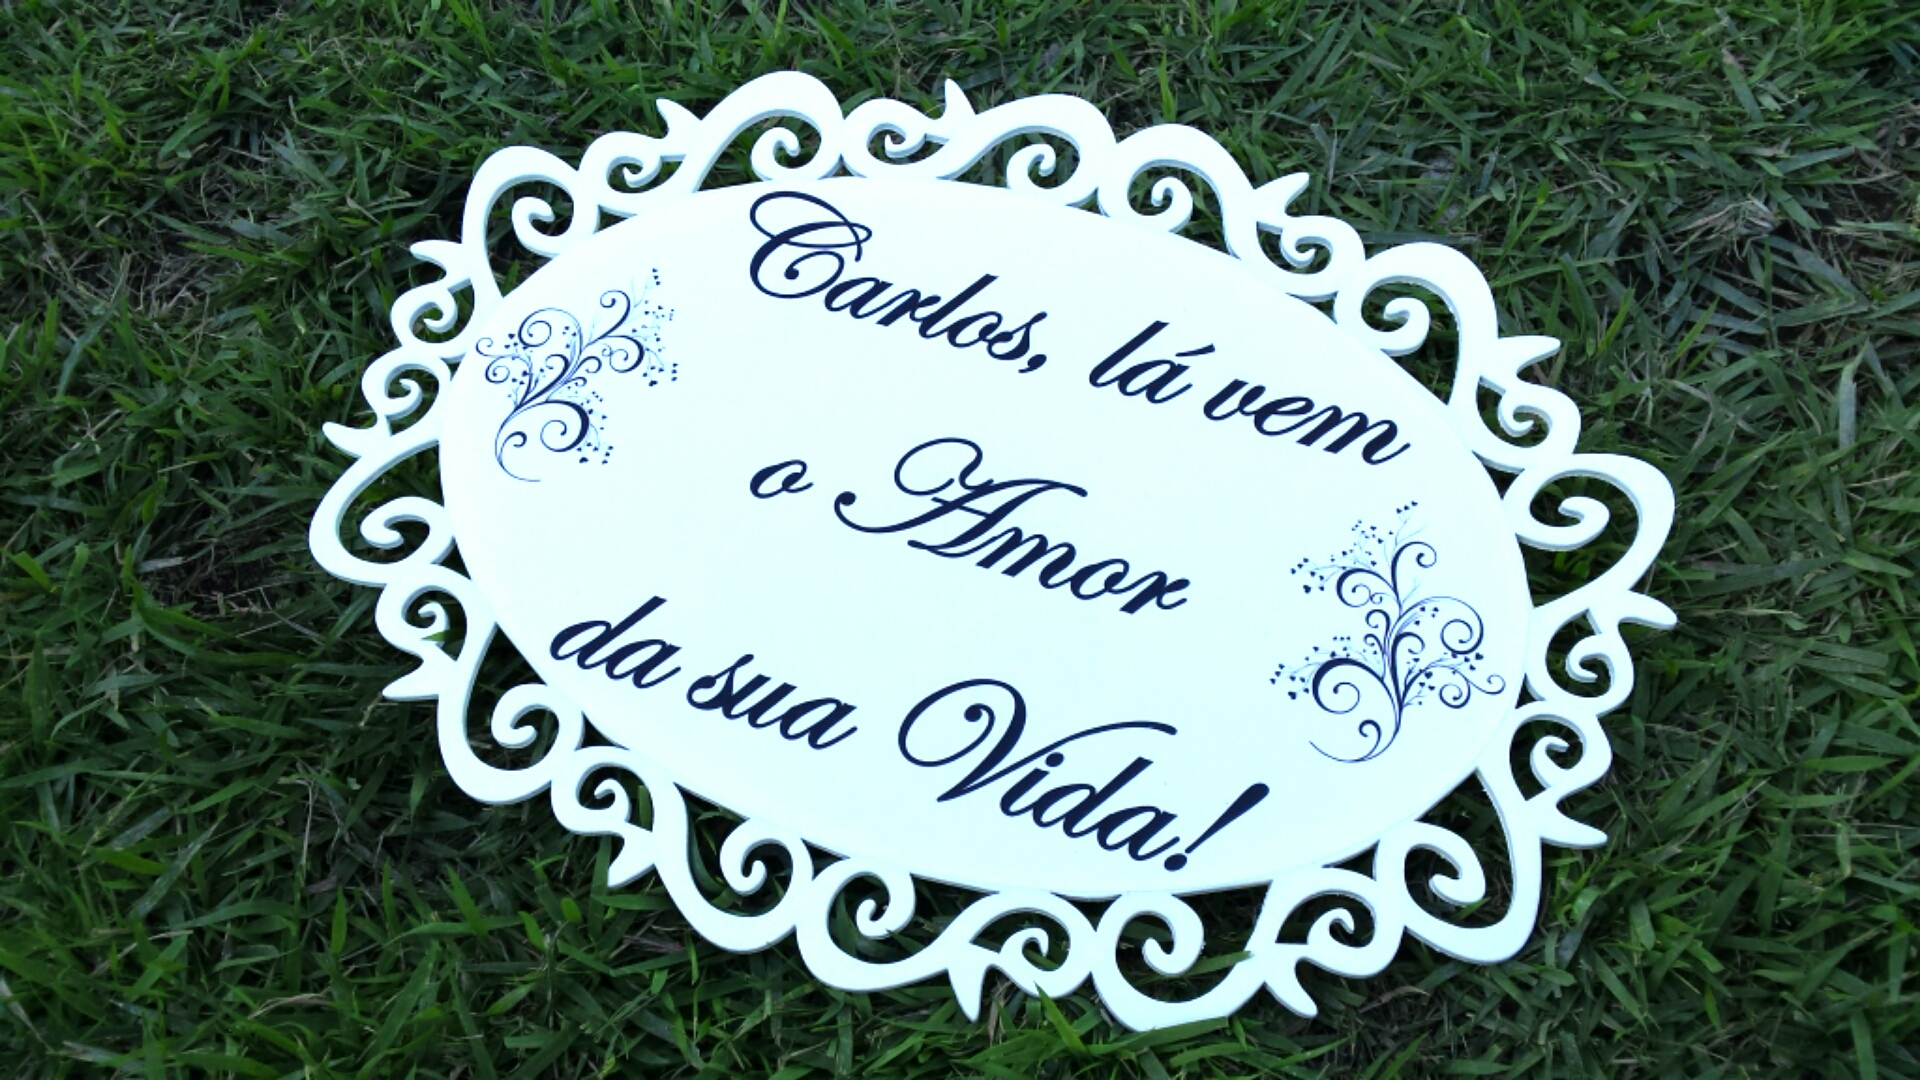 Frases Para As Placas De Entrada